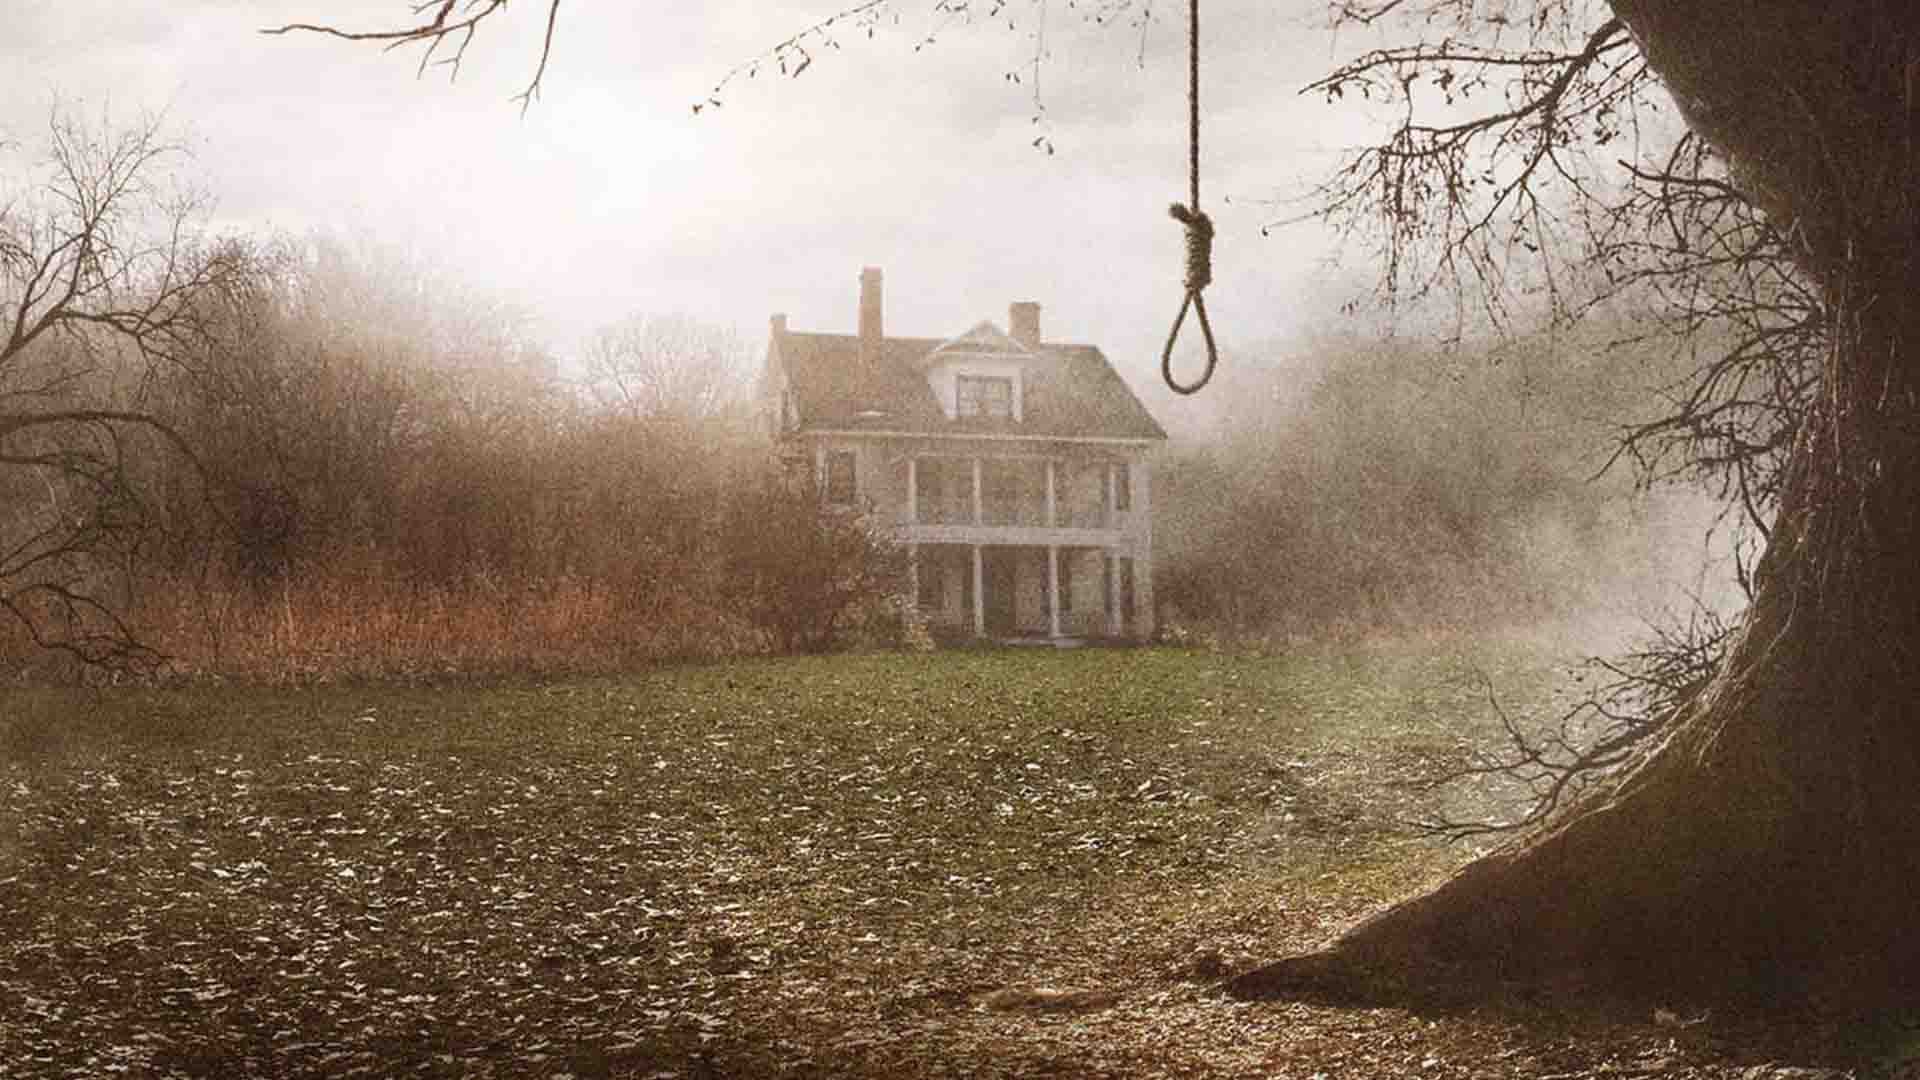 A country house in fog and rope in The Conjuring